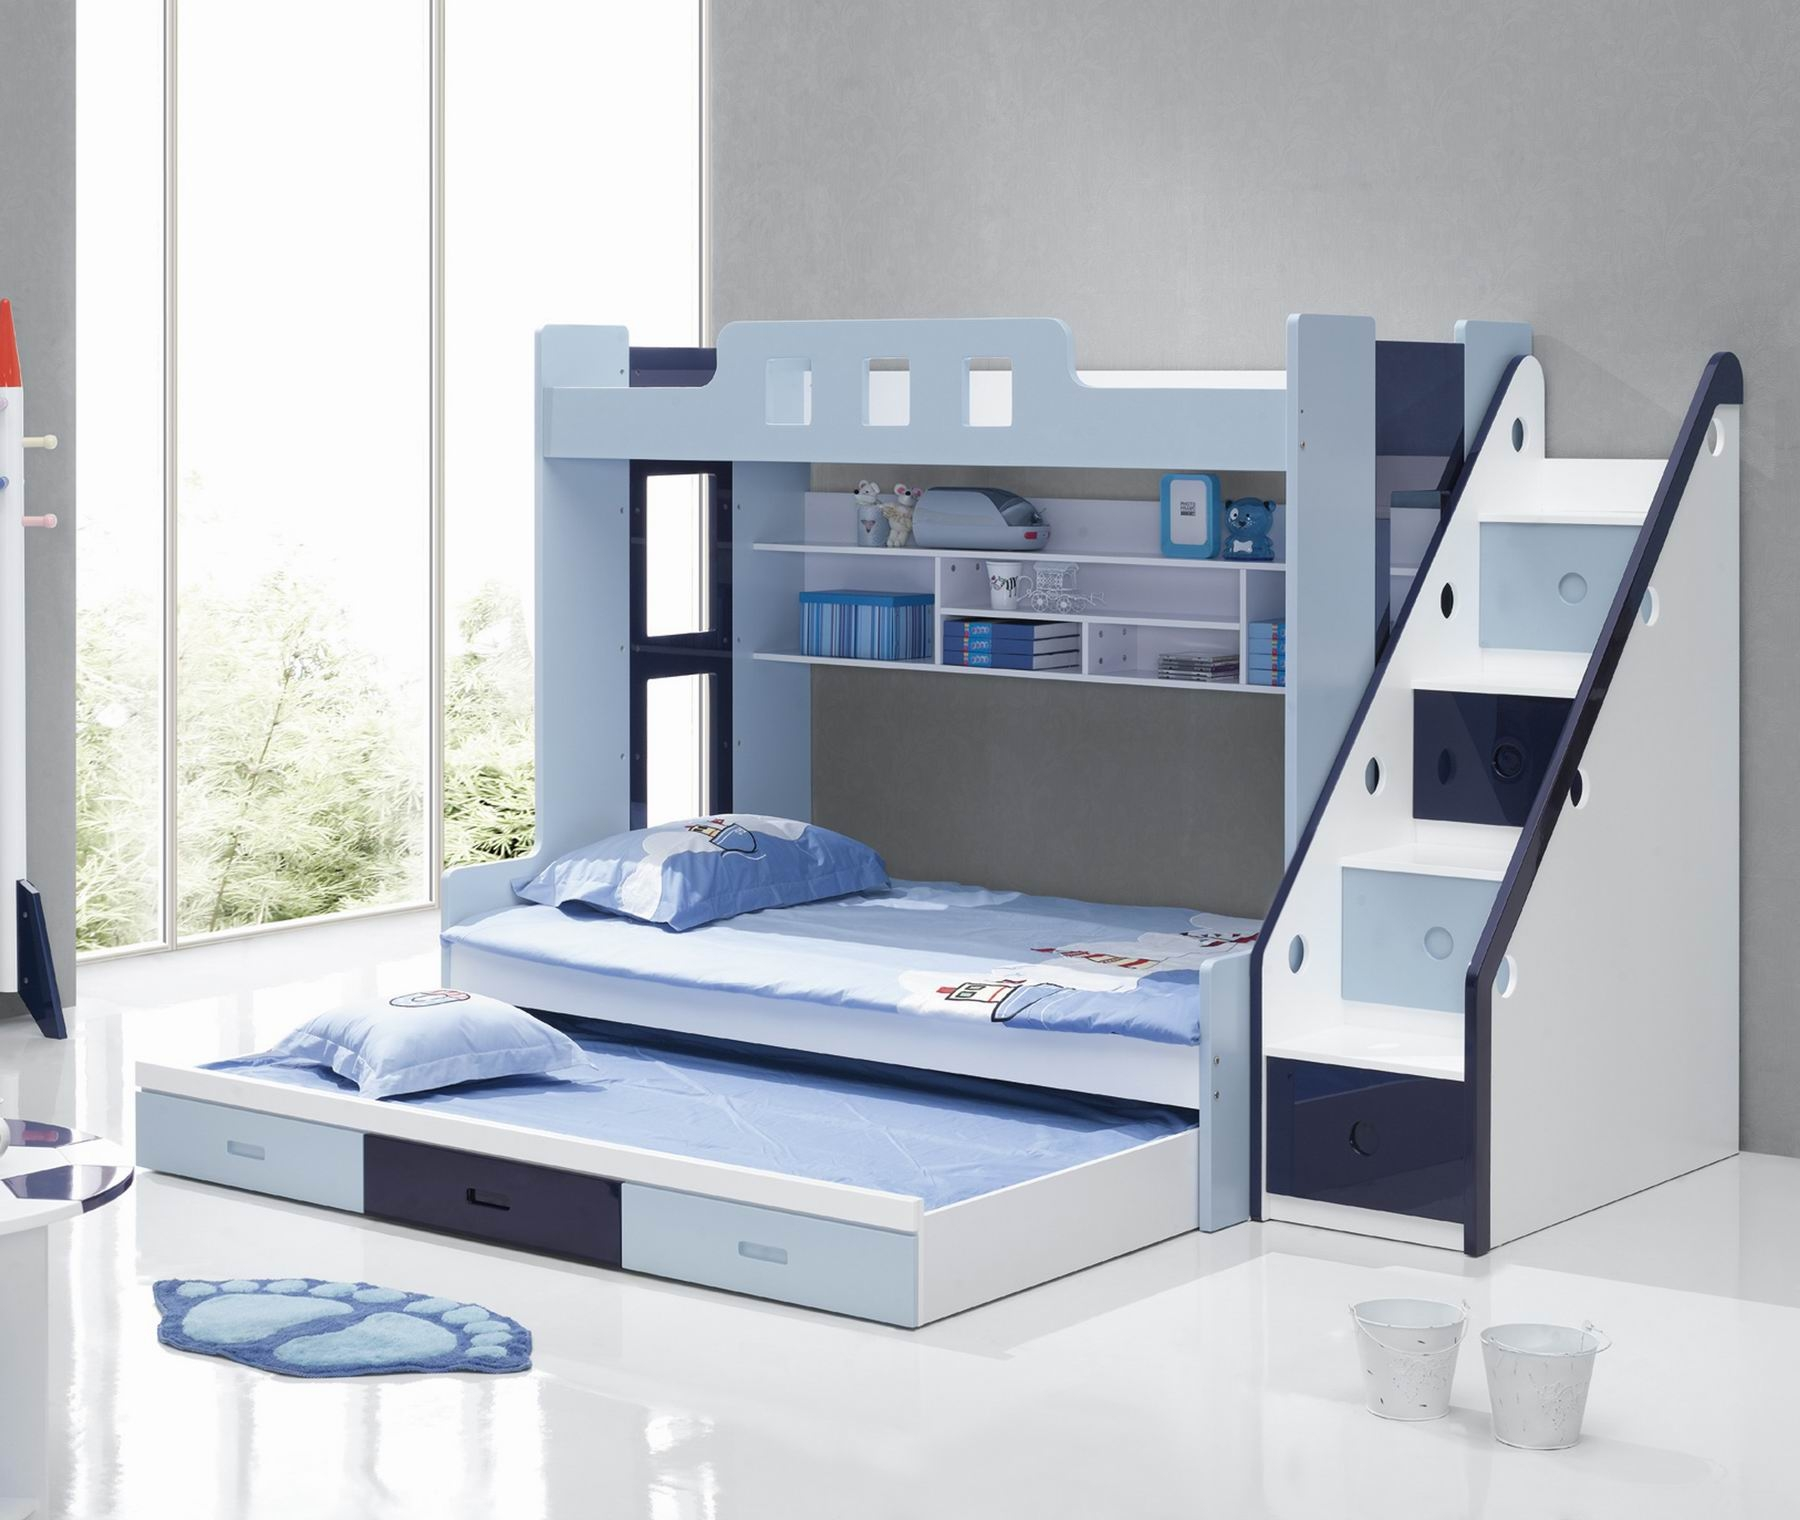 charming loft beds for teenagers with shelves and storage on white tile floor for teens bedroom decor ideas